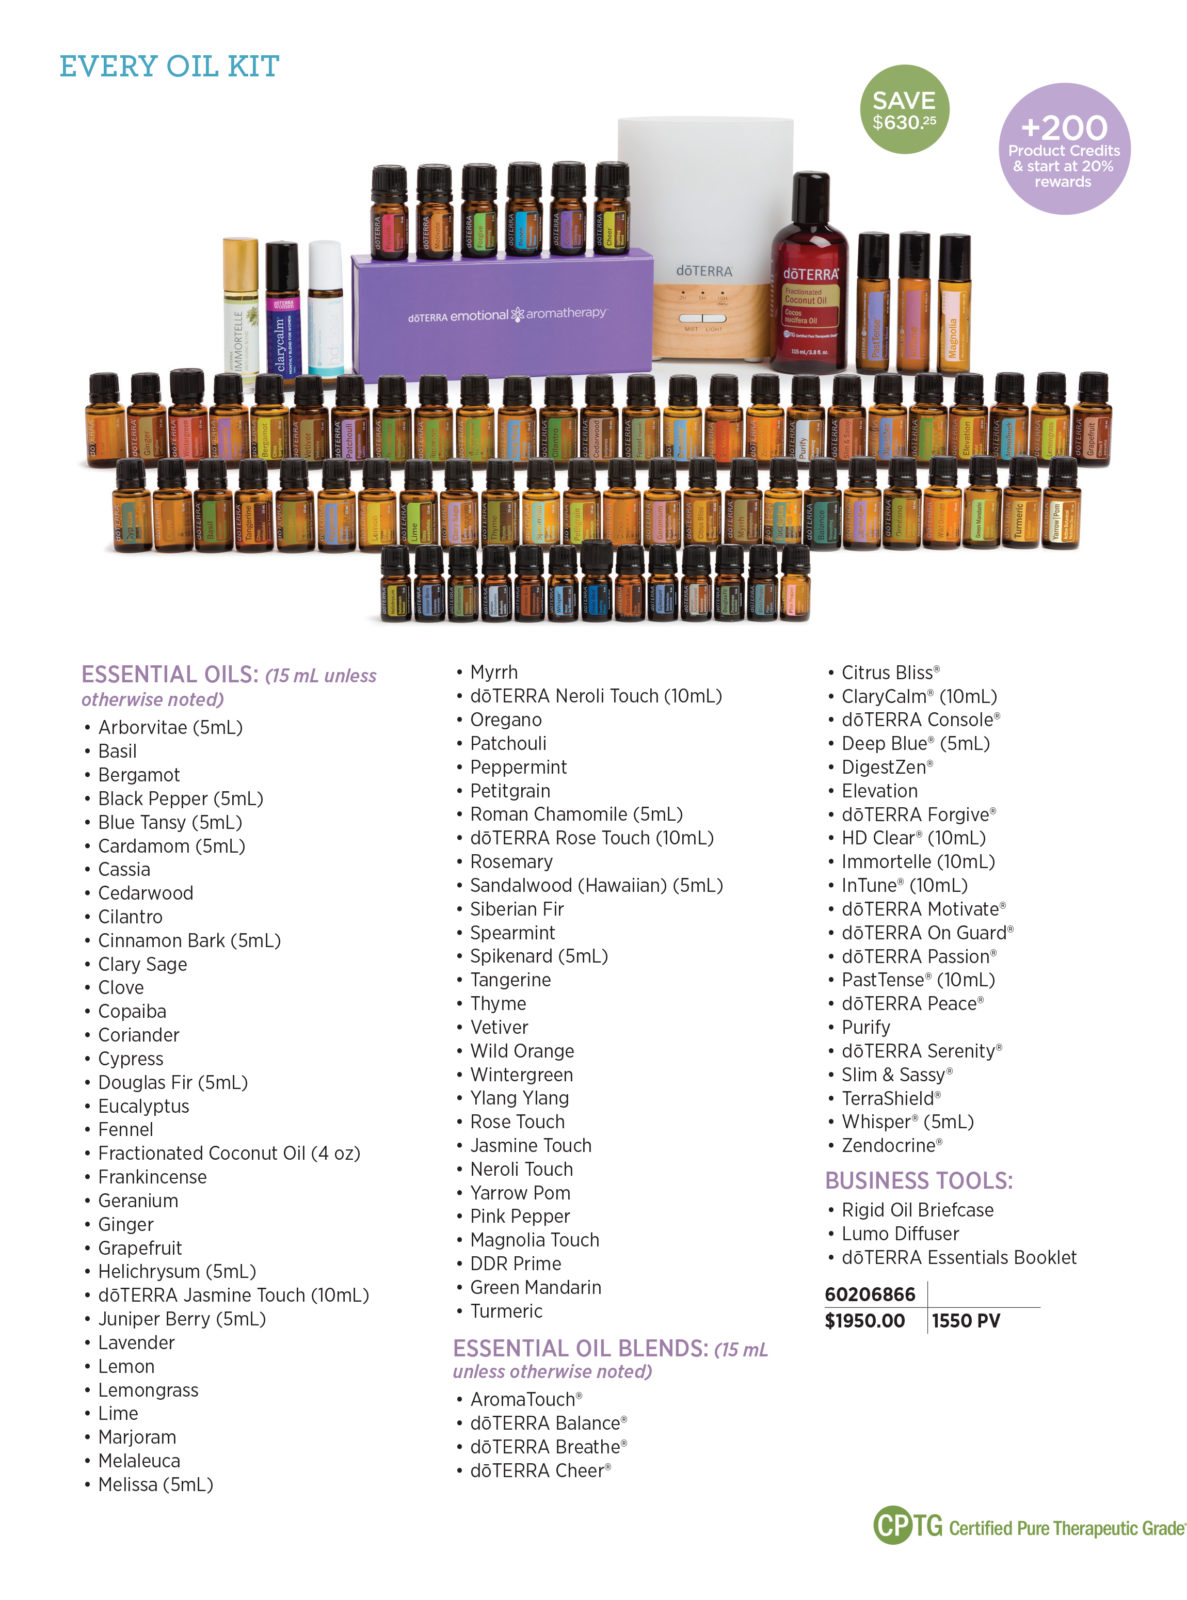 doTERRA Every Oil Kit - With the Every Oil Enrollment Kit, you are given complete access to build your oil knowledge and personally experience the effects of the abundant benefits of doTERRA essential oils. New Wellness Advocates and Wholesale Customers who enroll with an Every Oil Kit (1550 PV) and have a 100 PV Loyalty Rewards order the following month* will receive 200 loyalty points, and start loyalty point accrual at 20 percent.